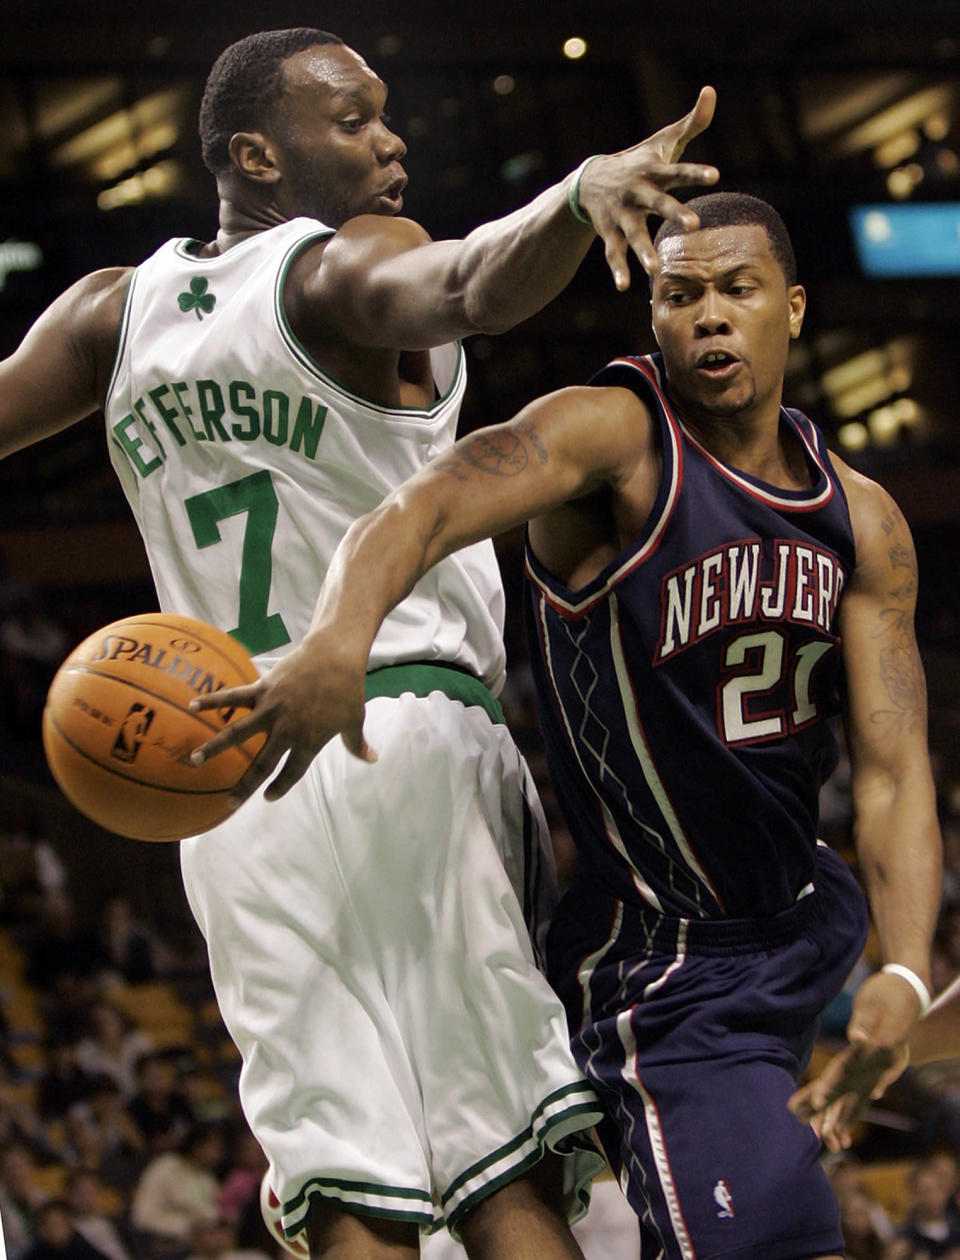 FILE - Boston Celtics' Al Jefferson (7) tries to stop New Jersey Nets' Antoine Wright (21) during the first quarter of an NBA basketball game in Boston, in this Wednesday, Oct. 18, 2006, file photo. Eighteen former NBA players, including Wright, have been indicted on charges alleging they defrauded the league's health and welfare benefit plan out of about $4 million, according to an indictment Thursday. (AP Photo/Chitose Suzuki, File)